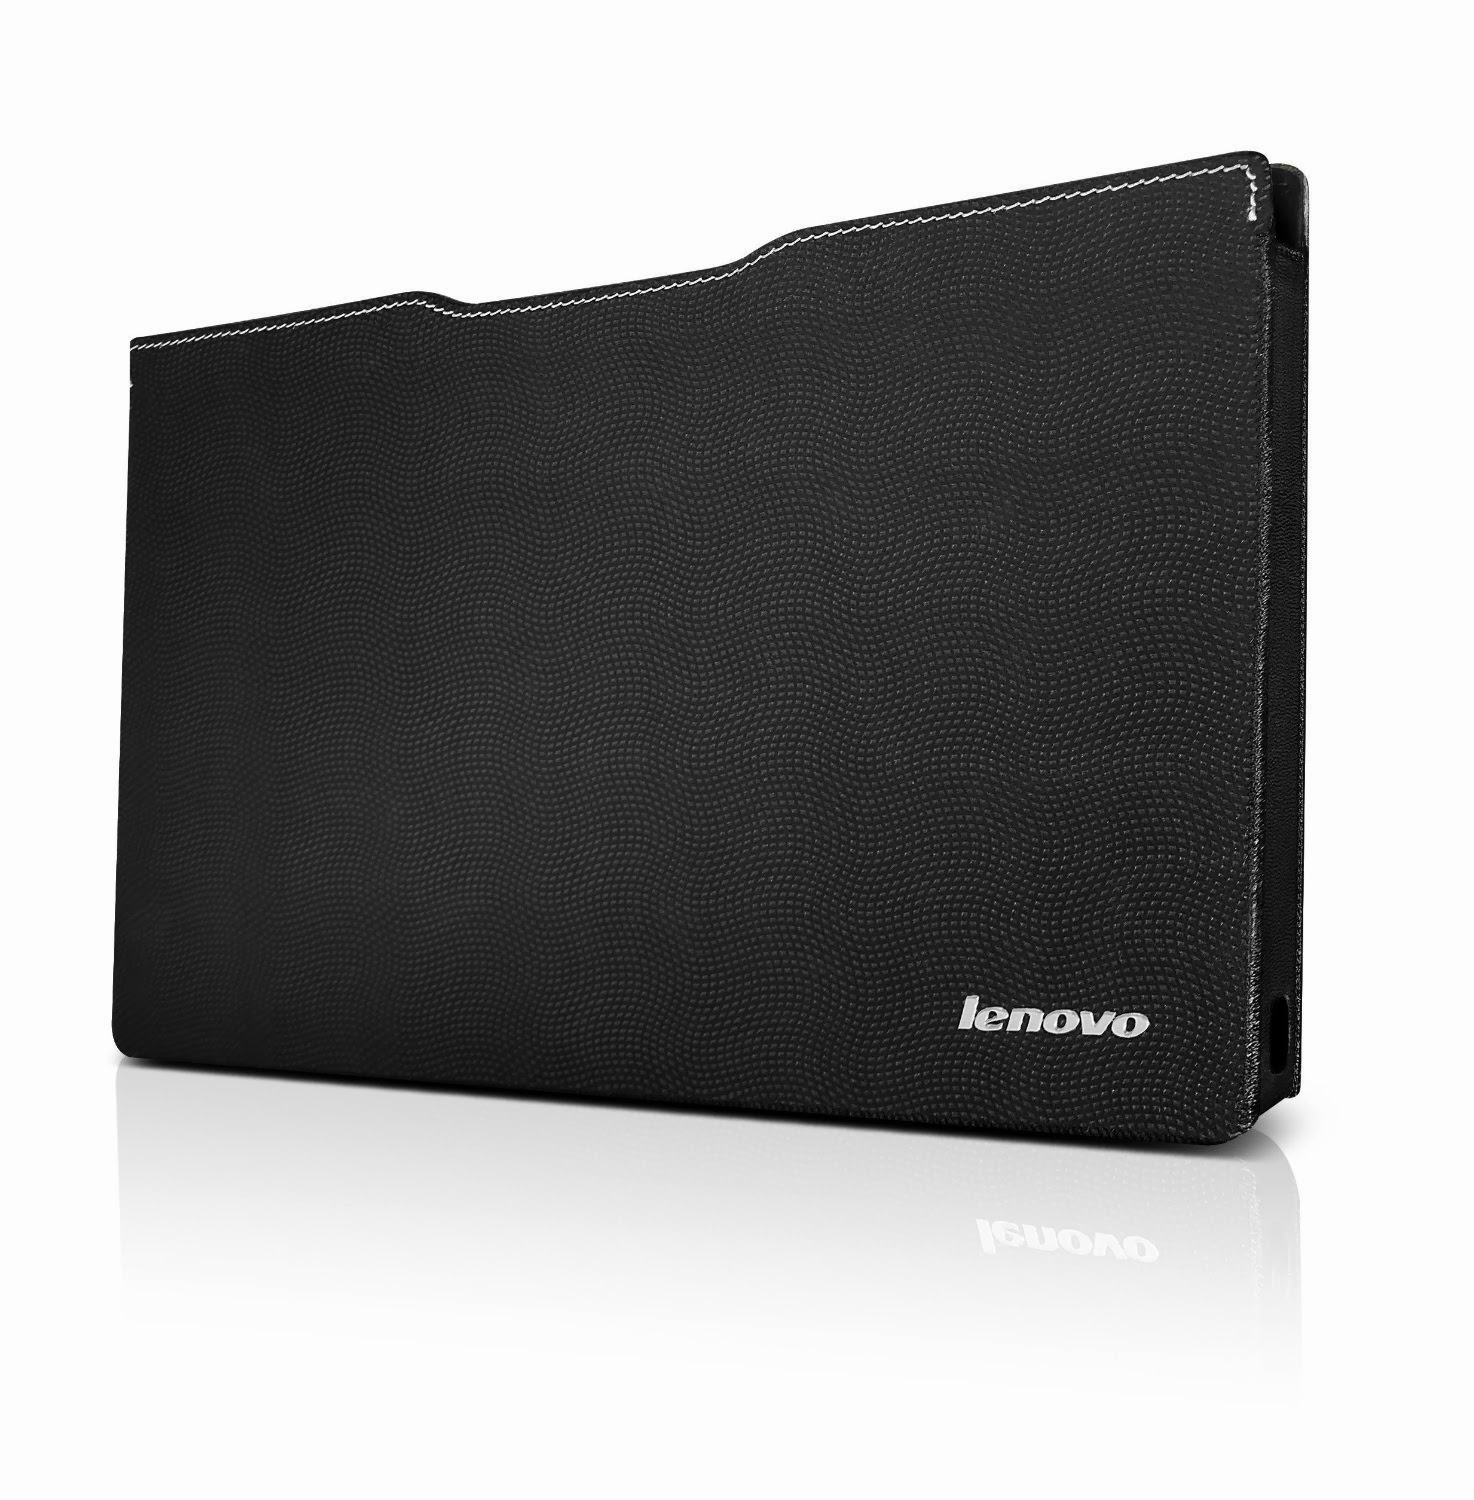 Find Lenovo eCoupons November to save up to 37% on Lenovo laptops & desktops. Get 35% off Lenovo coupon code, free shipping, and Lenovo laptops deals. Top deals; 35% off Thinkpad laptops, and extra 5% off any Lenovo PC. Total 50 coupons for November